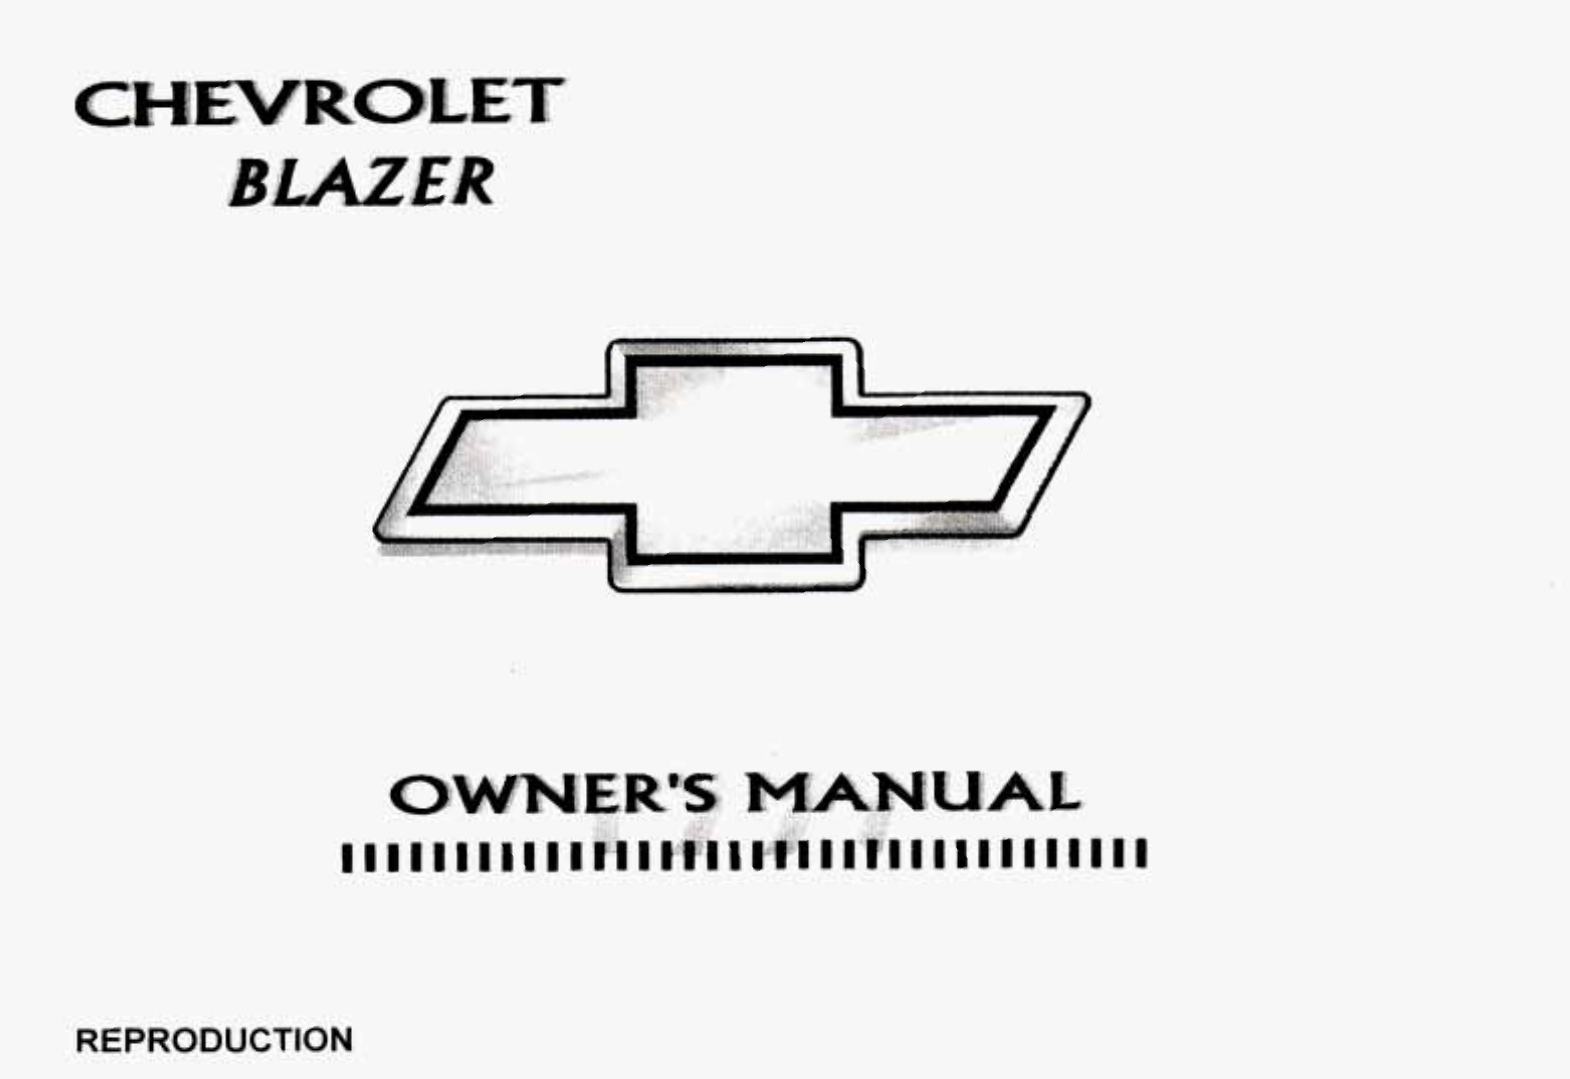 Chevy Blazer Owners Manual